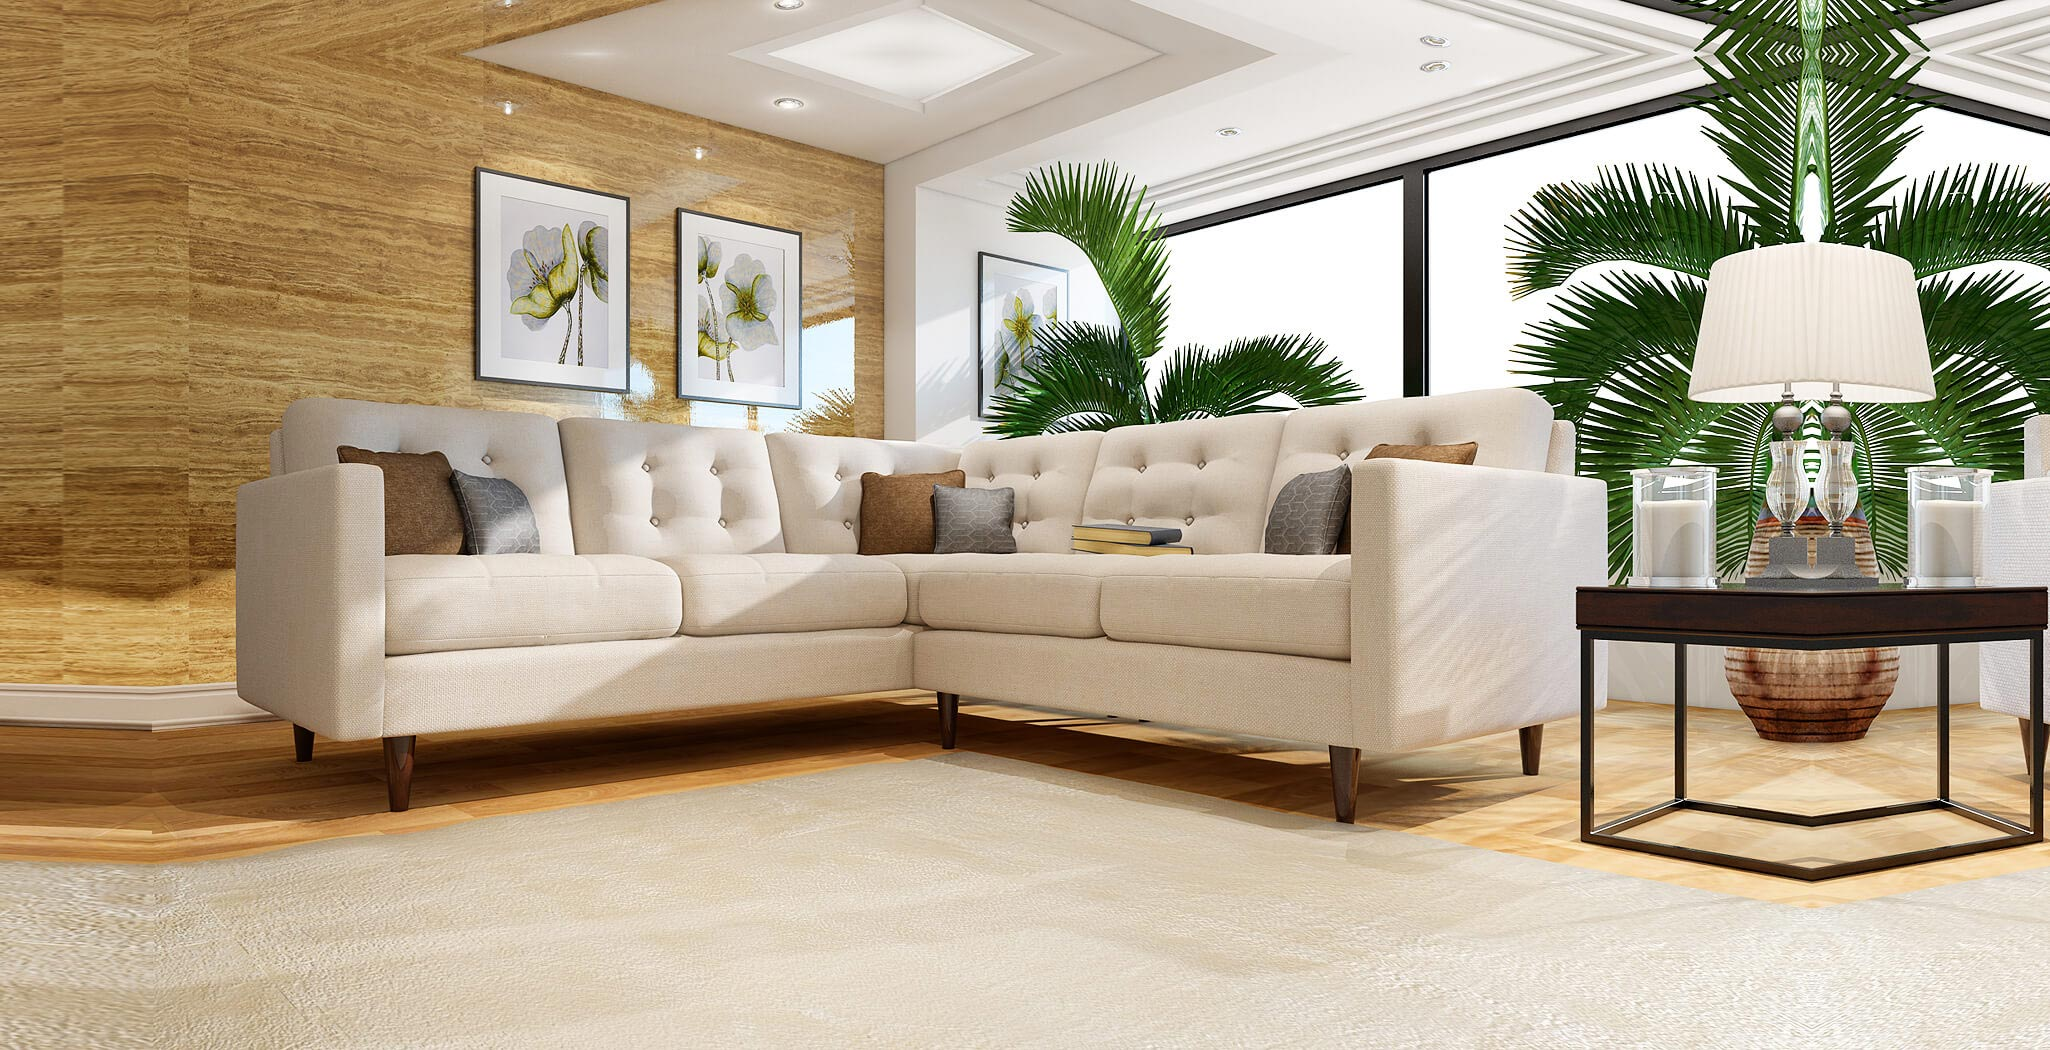 oslo sectional furniture gallery 1